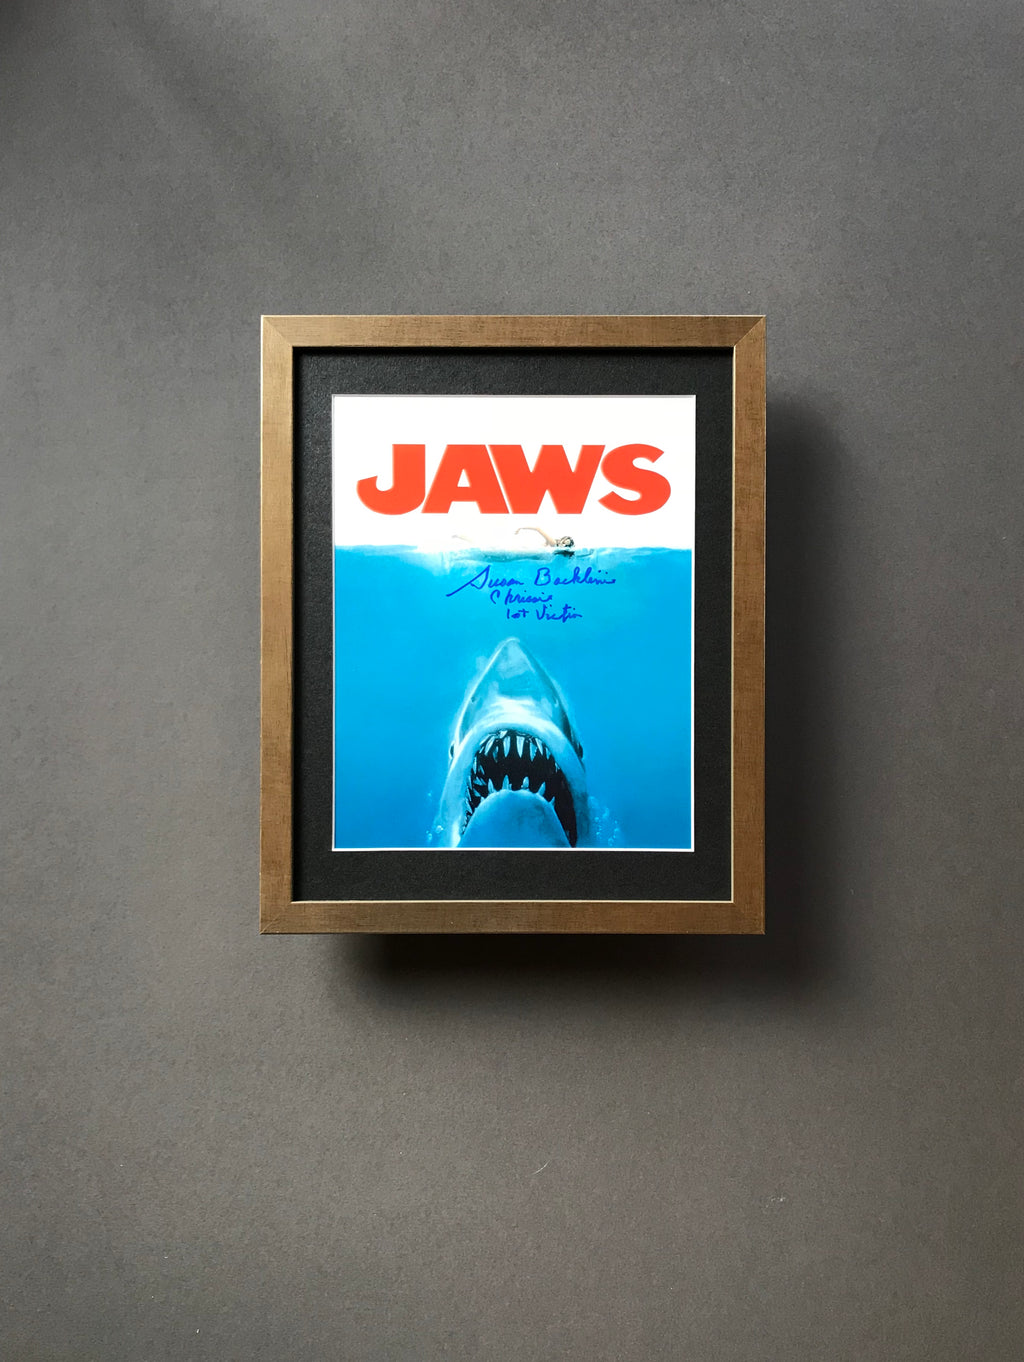 Jaws (1975) - Susan Backlinie as 'Chrissie' - A Framed Autographed Still